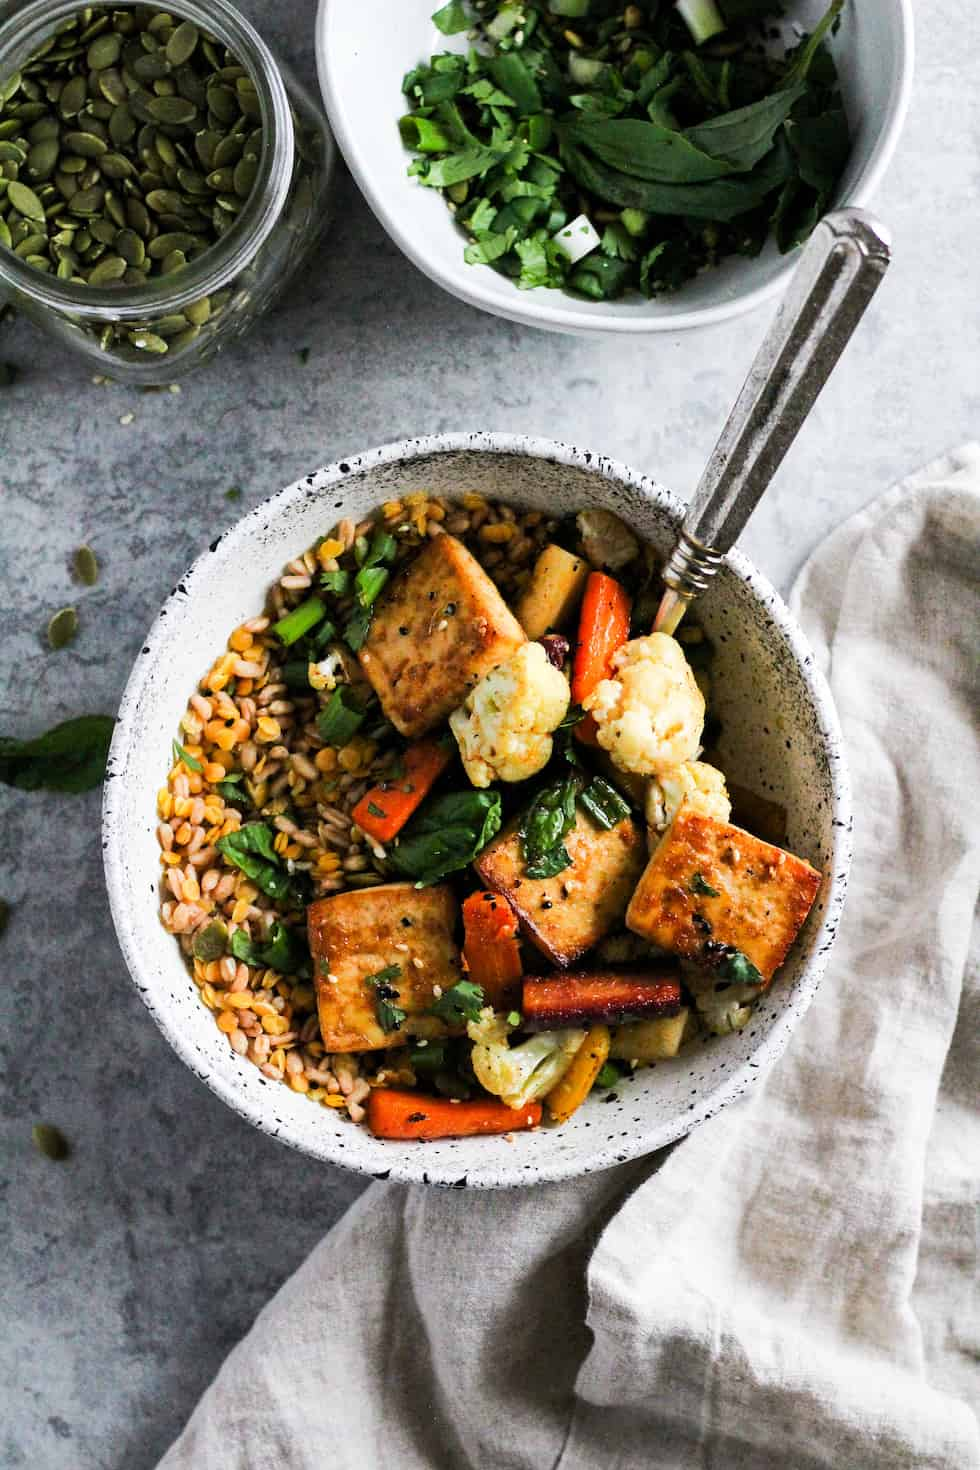 Sheet pan tofu bowls in white stone bowl with linen napkin and grey background.